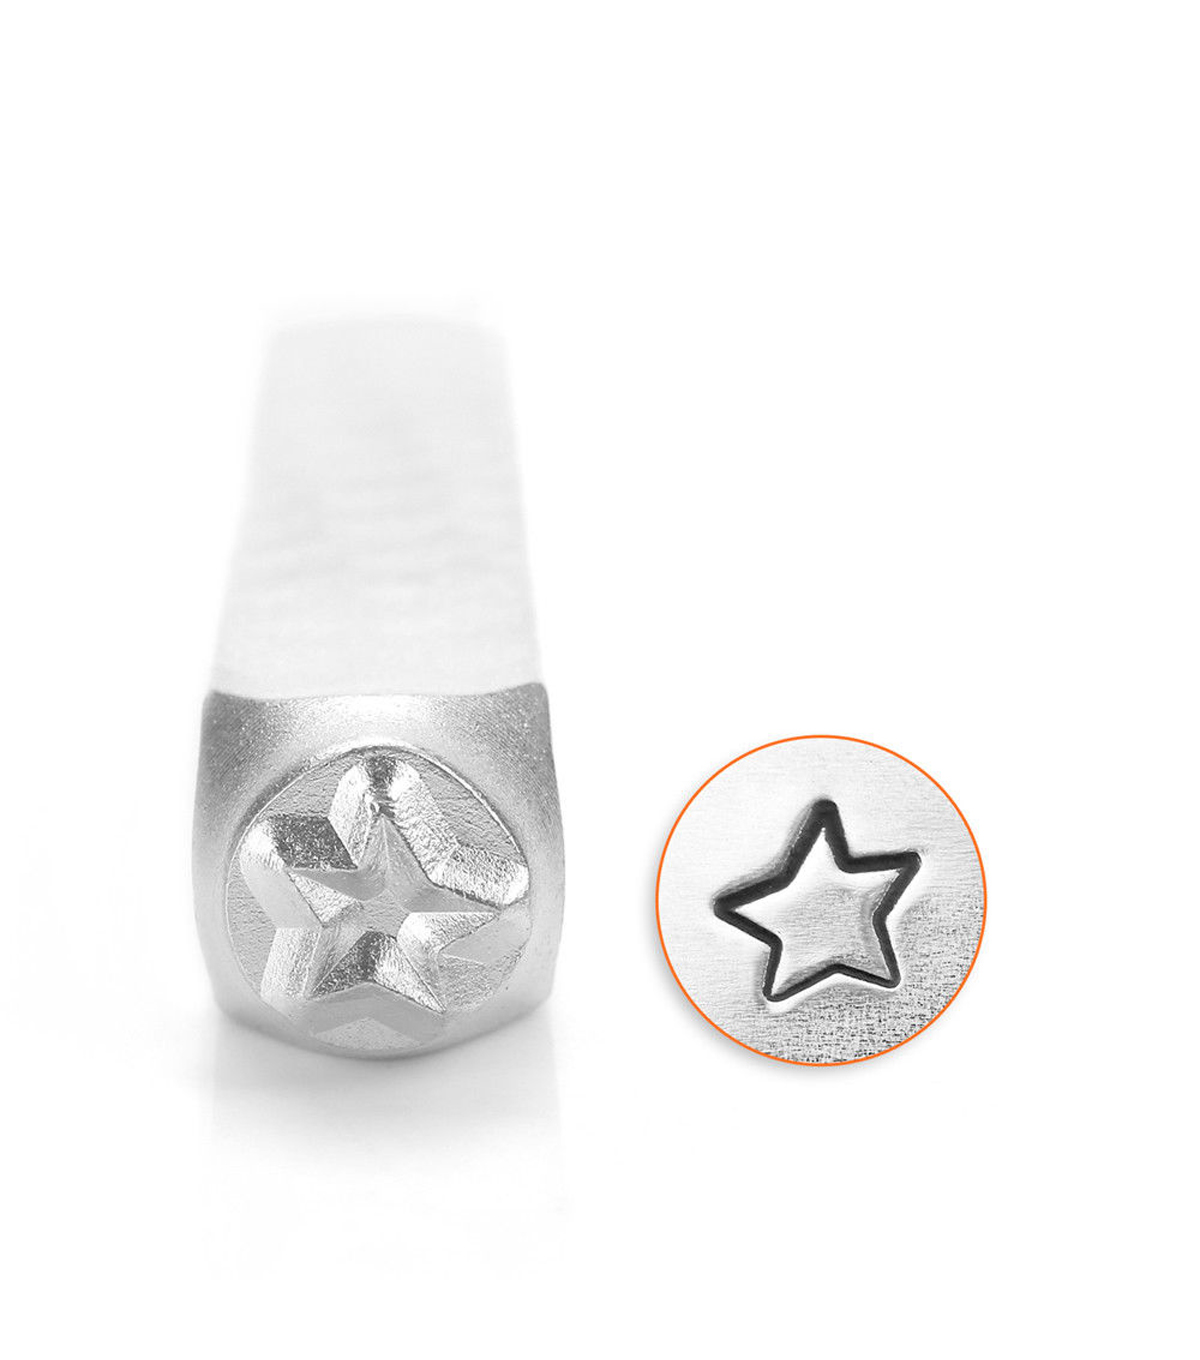 ImpressArt 6mm Stamp Fun Star Large